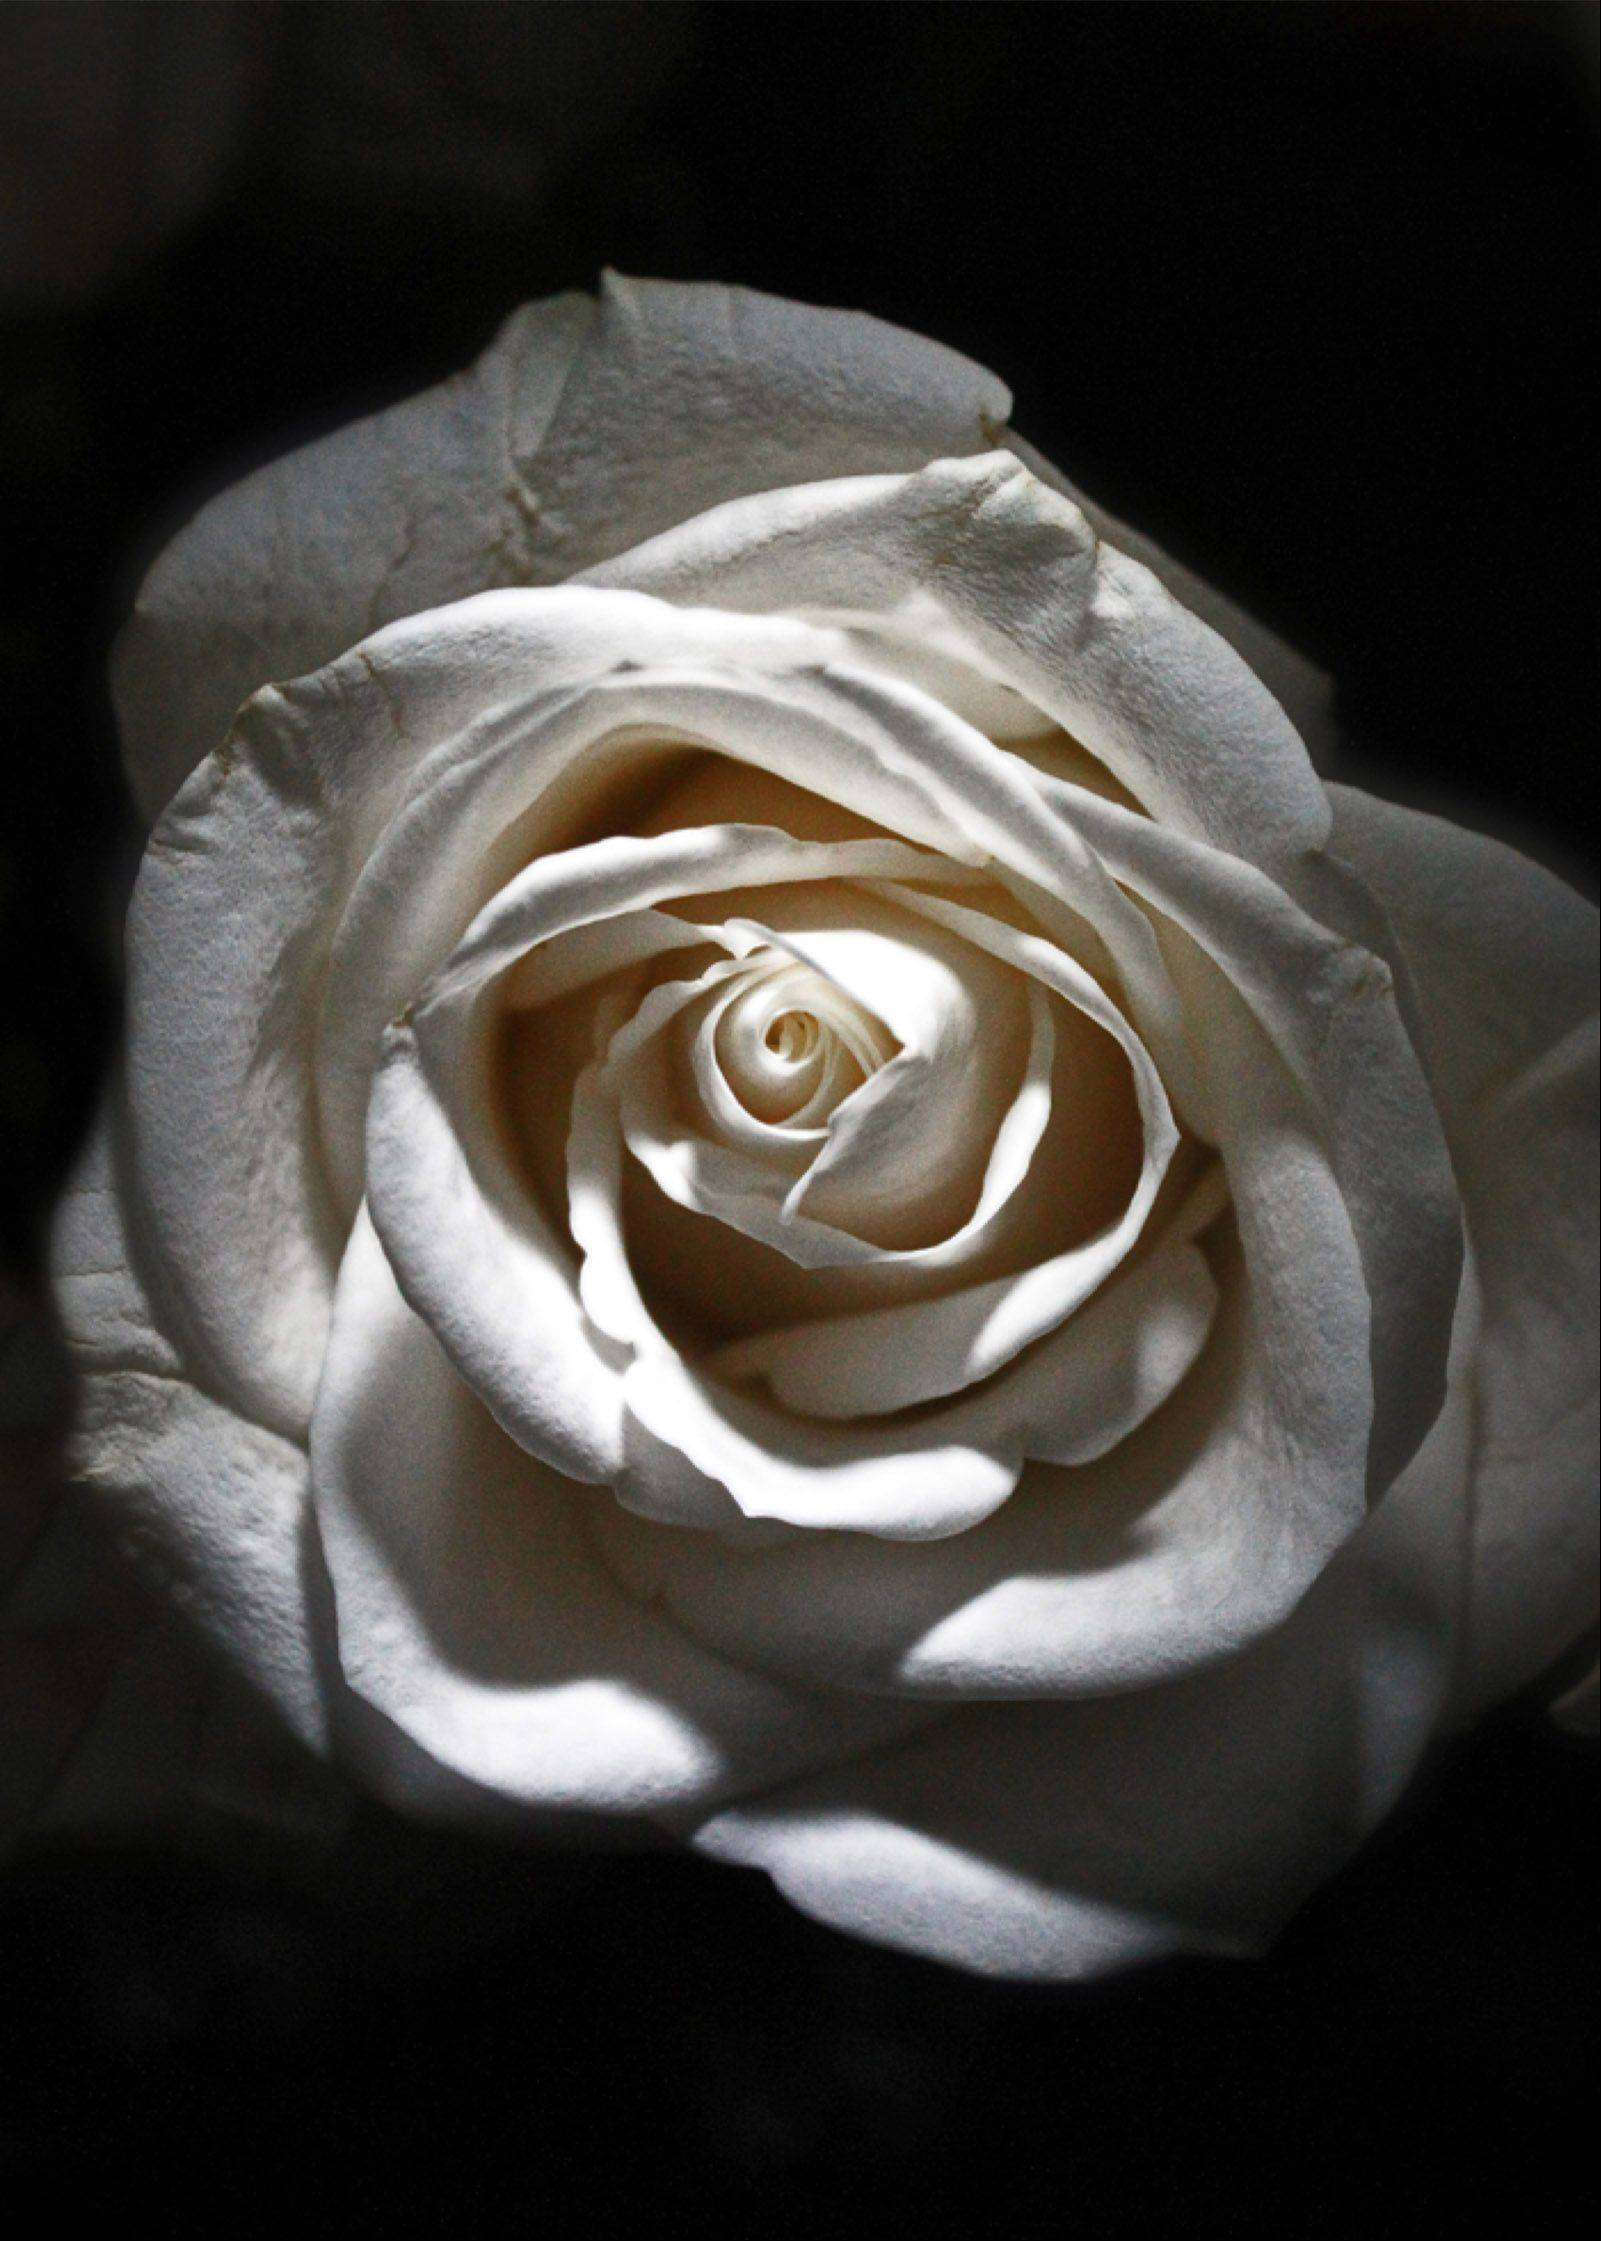 A white rose with accent light shining from above.